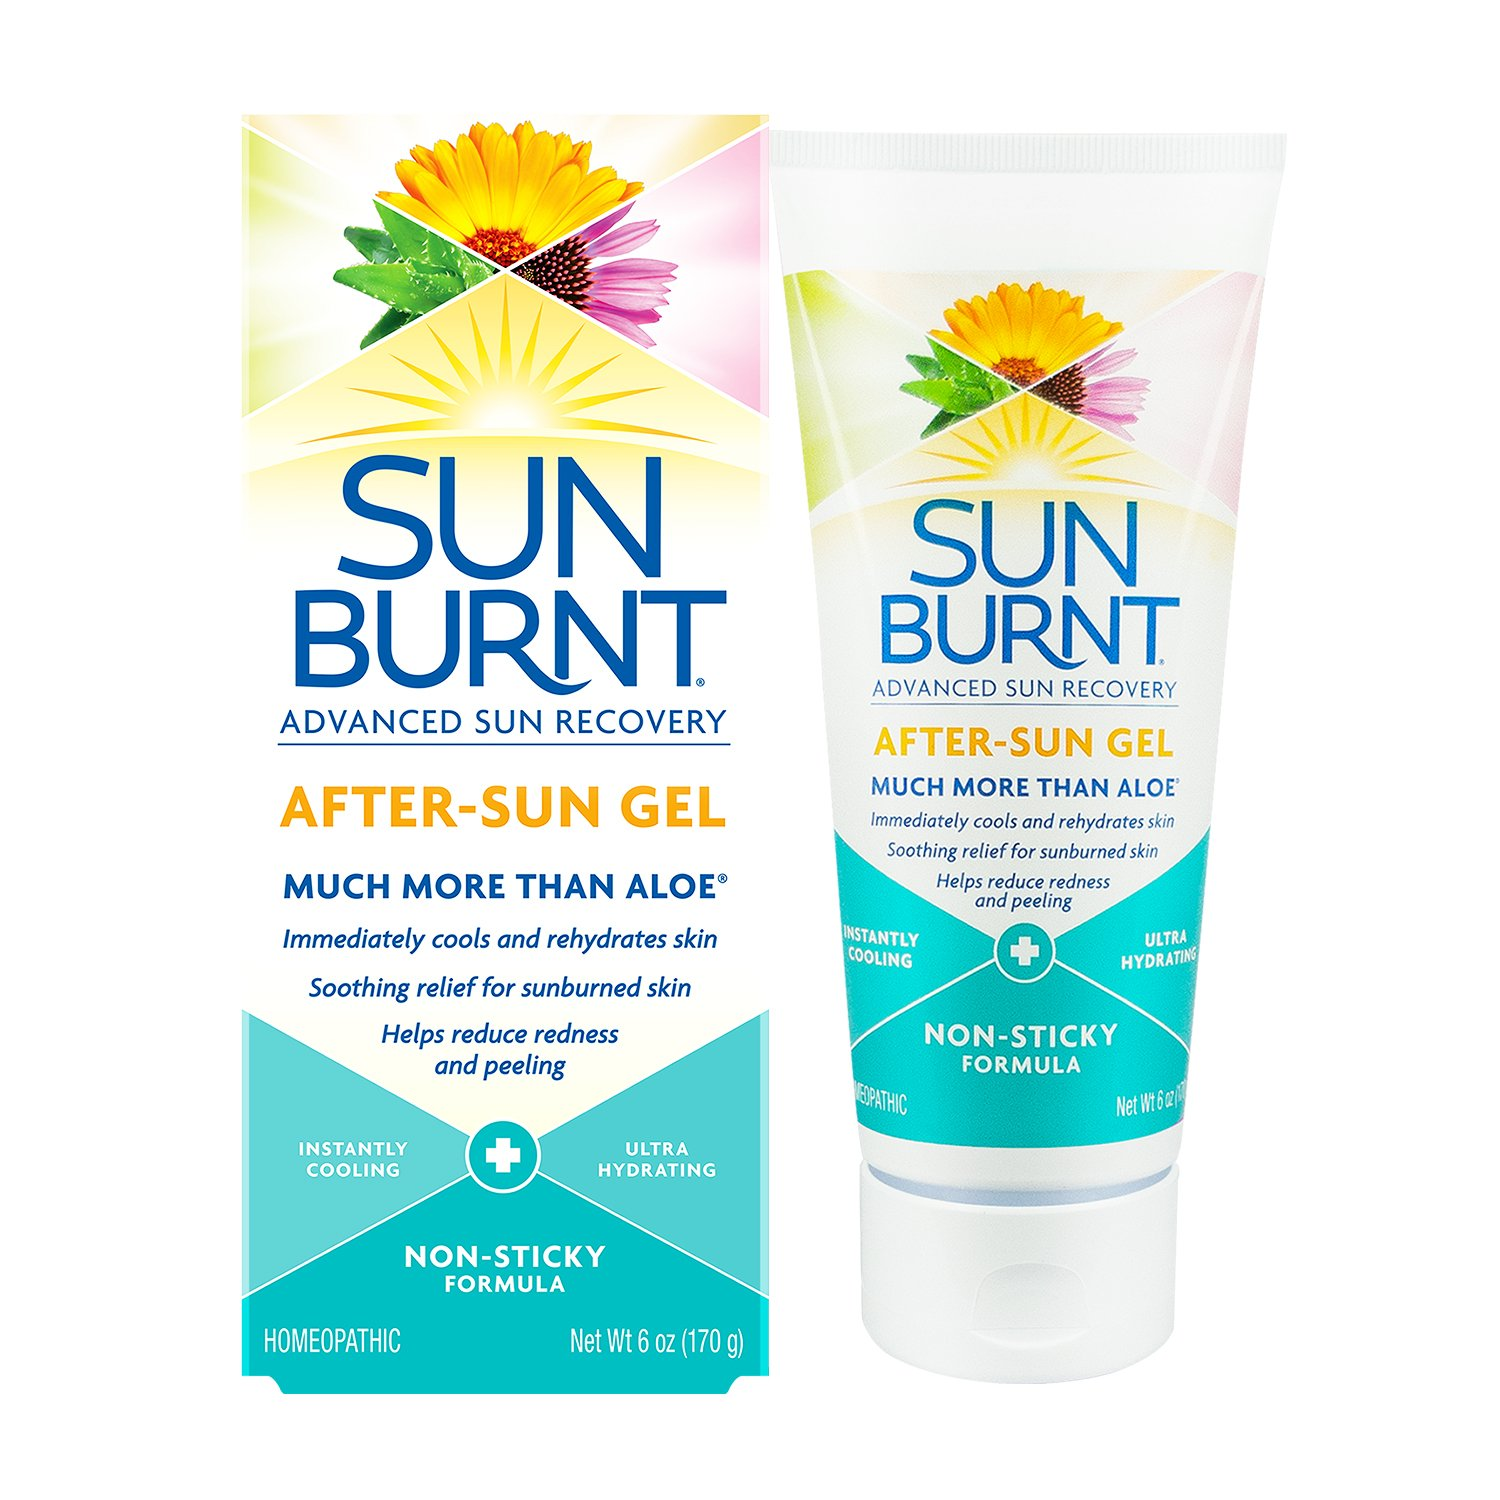 SunBurnt Advanced Sun Recovery After-Sun Gel 6oz, Instantly cooling, ultra hydrating, non-sticky relief for sunburns & dry skin with aloe Sun-3893